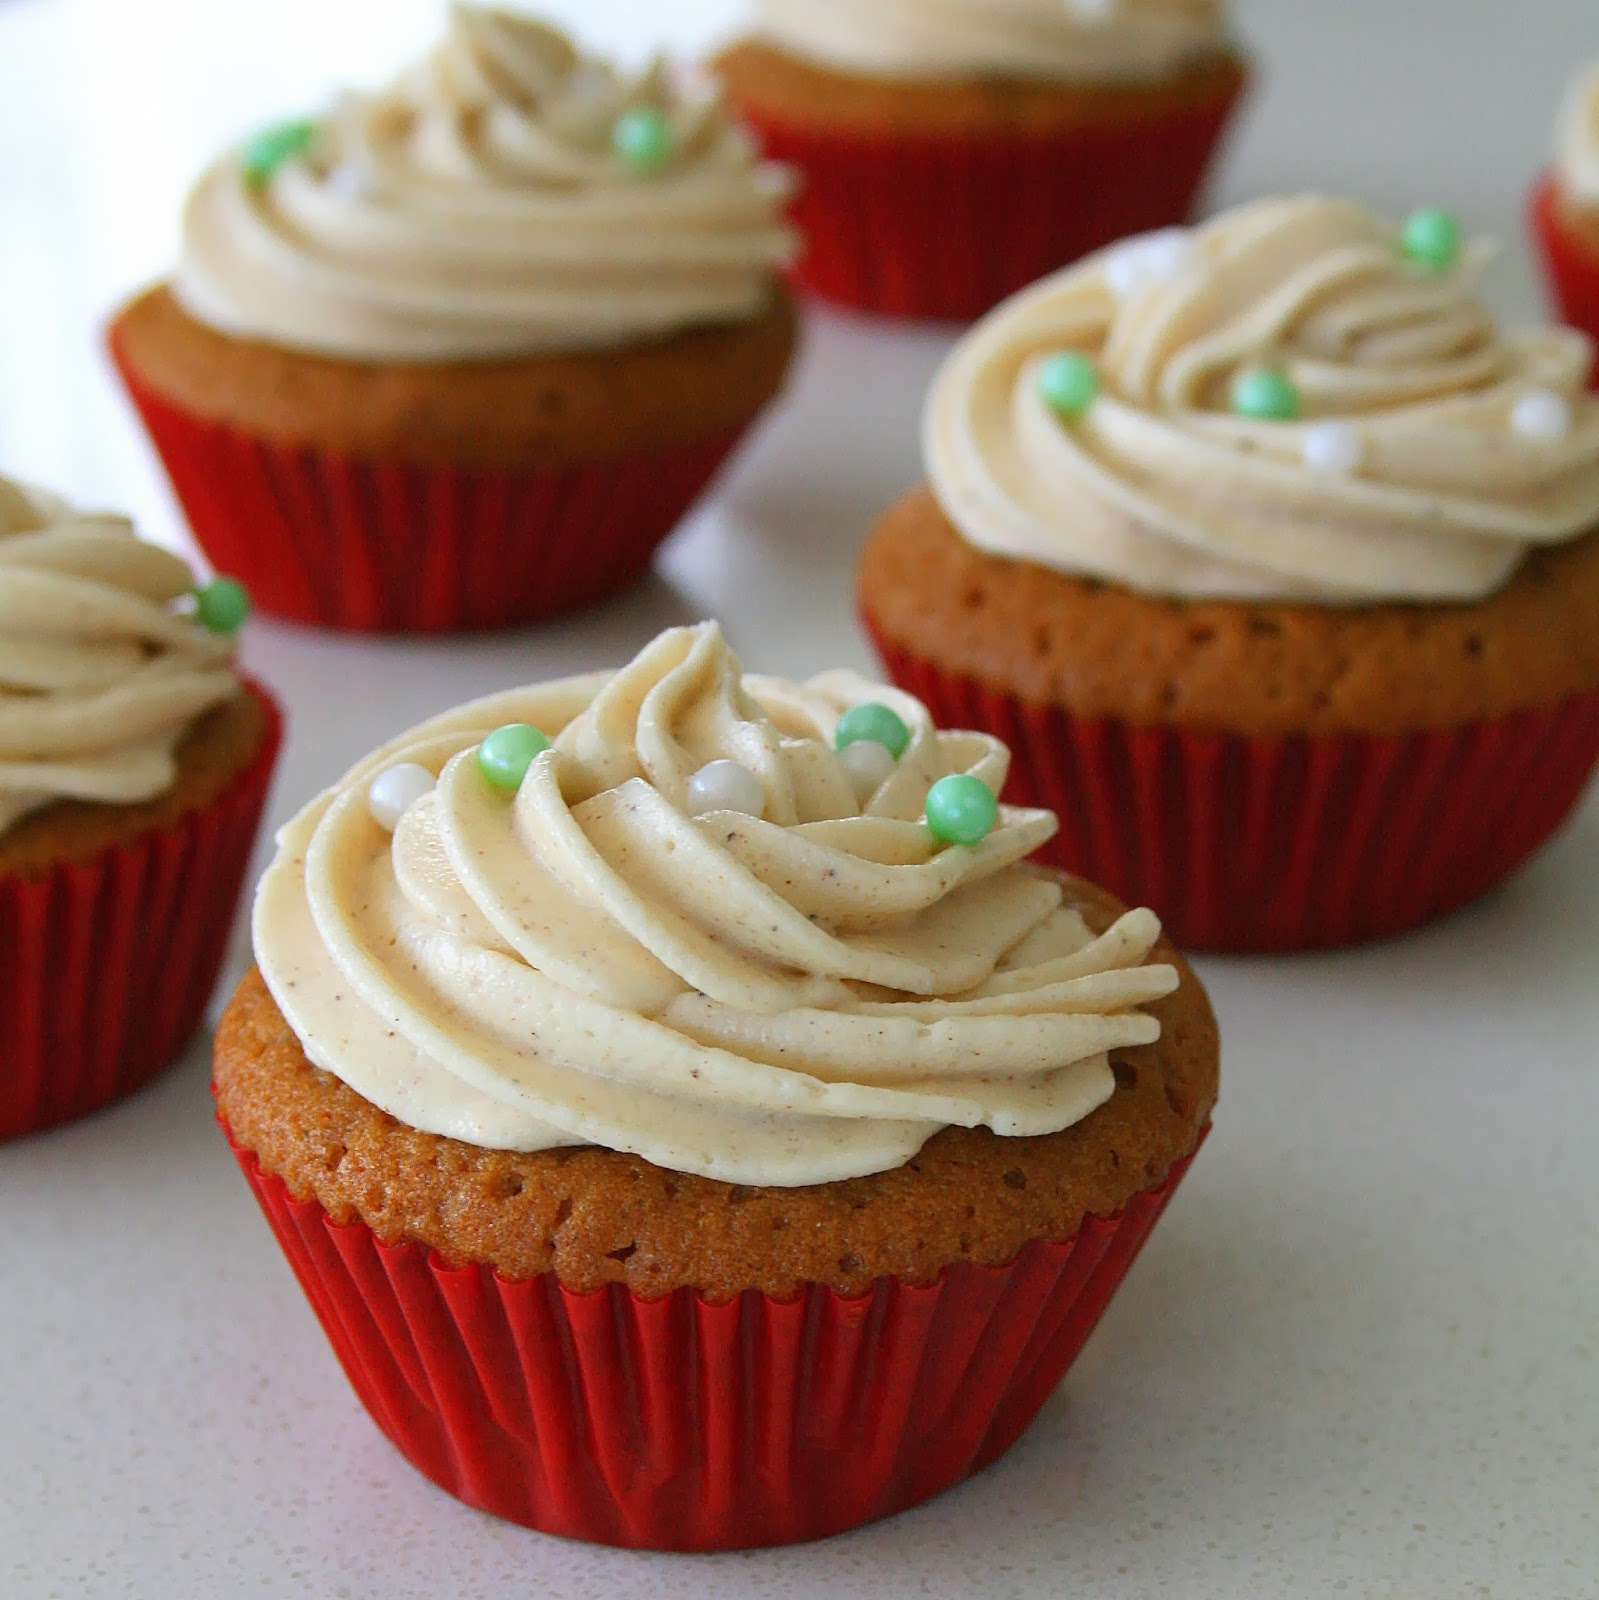 Gingerbread Cupcakes From Spice Cake Mix